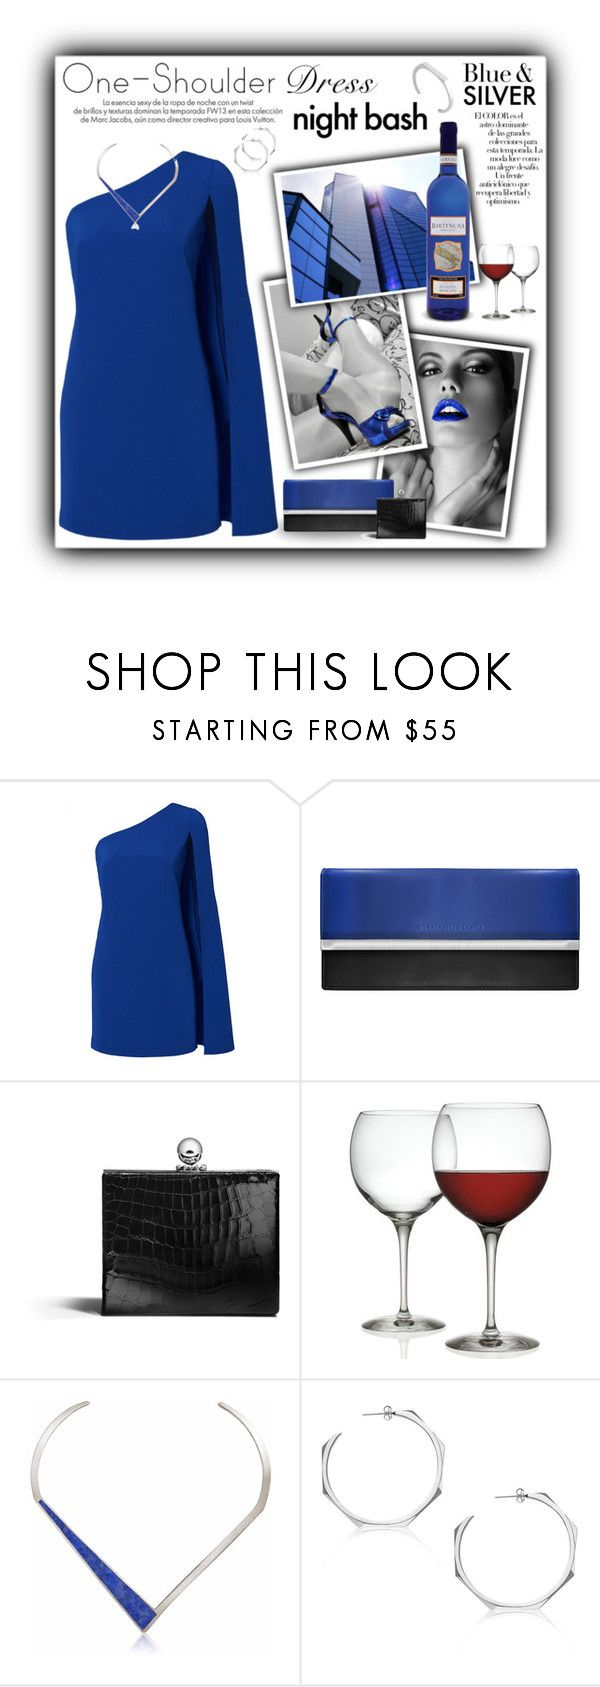 """""""One-Shoulder Dress"""" by gailermels ❤ liked on Polyvore featuring Jill by Jill Stuart, Asprey, Alessi, Louis Vuitton, Arco and Edge of Ember"""